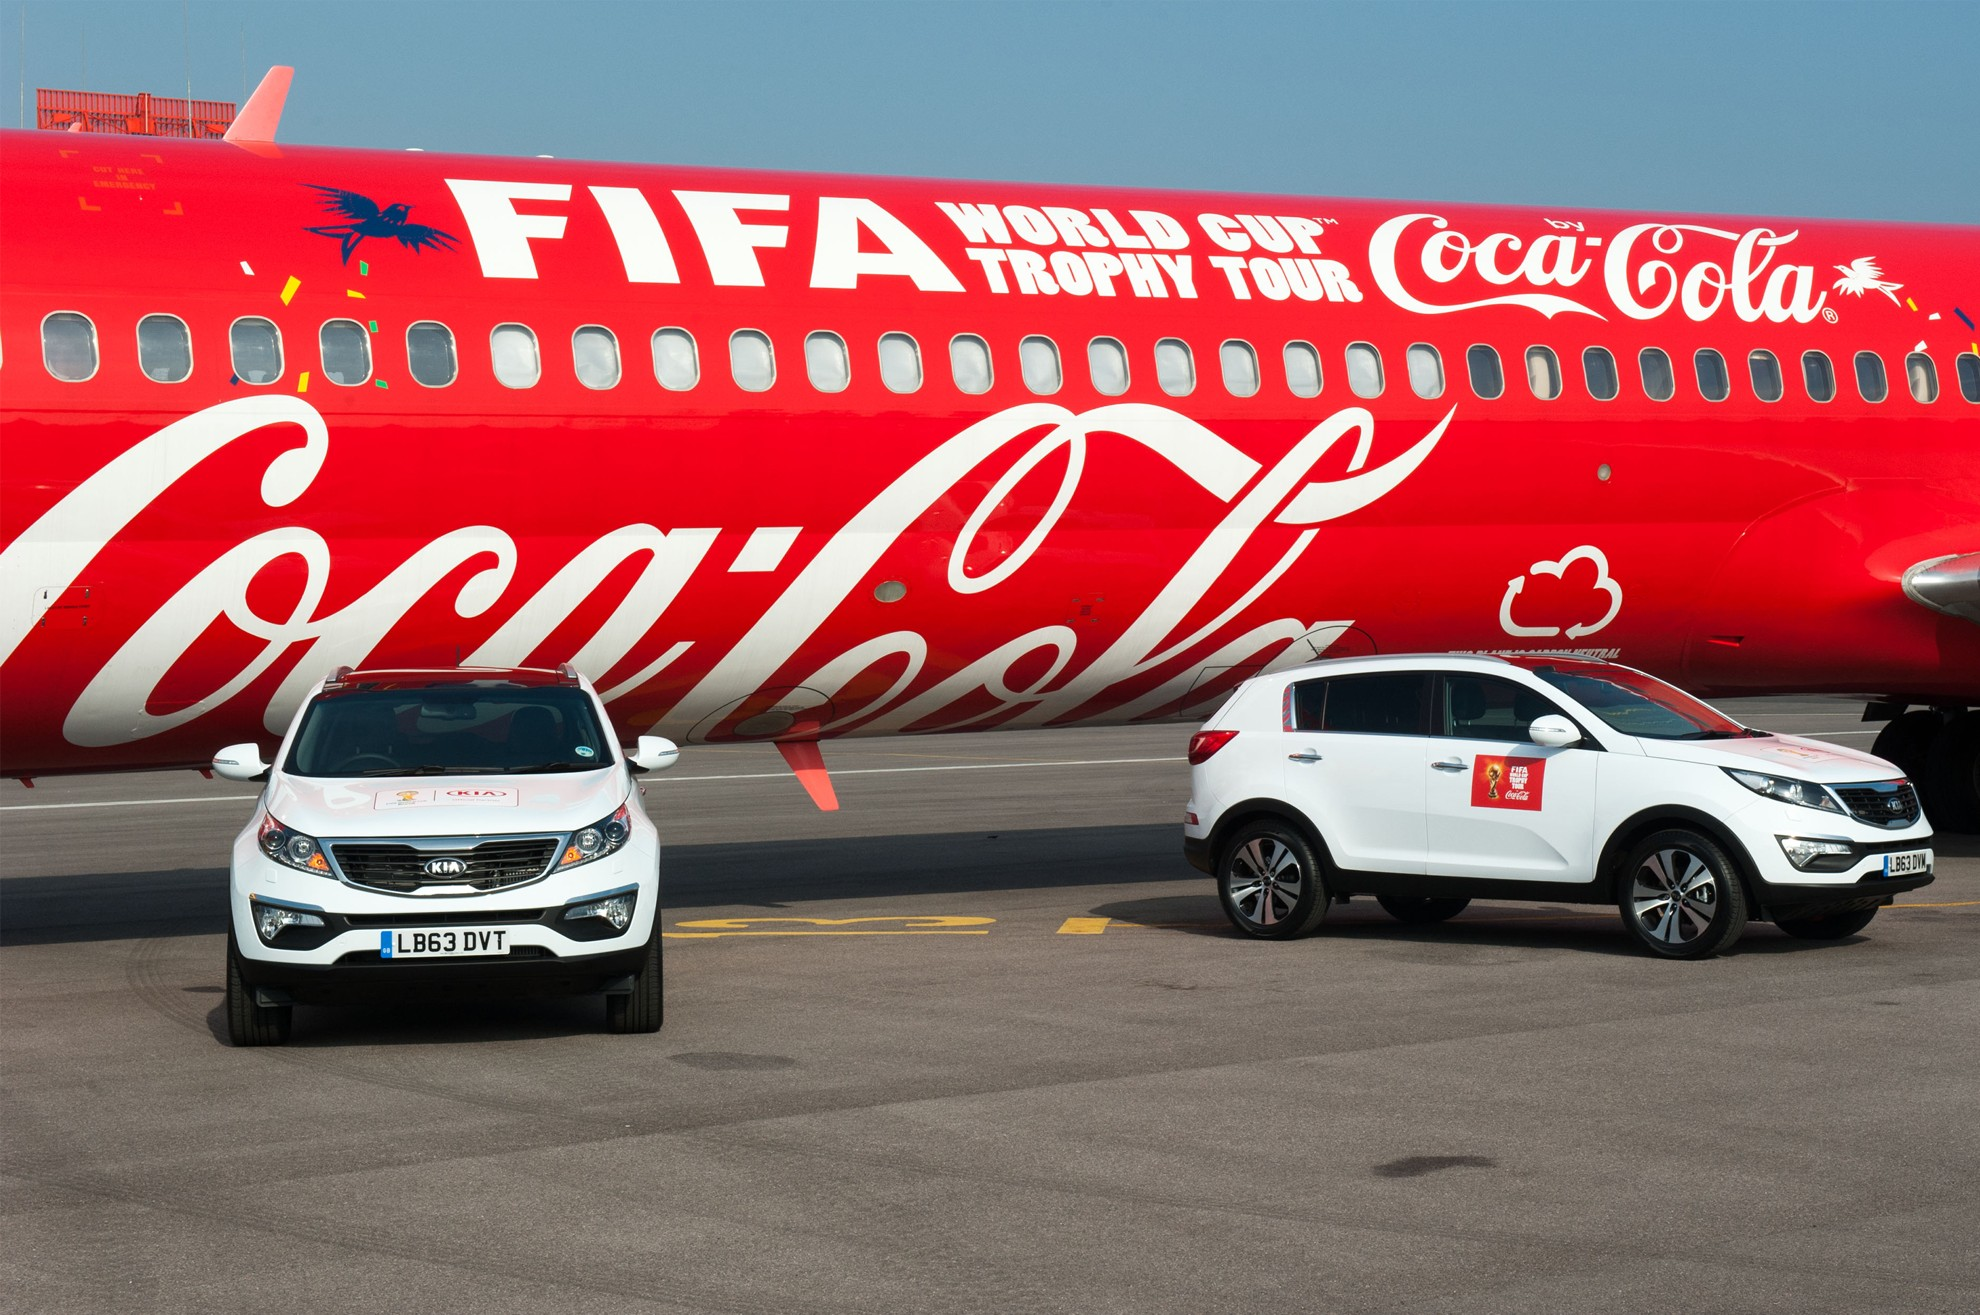 Coca-Cola-Fifa-World-Cup